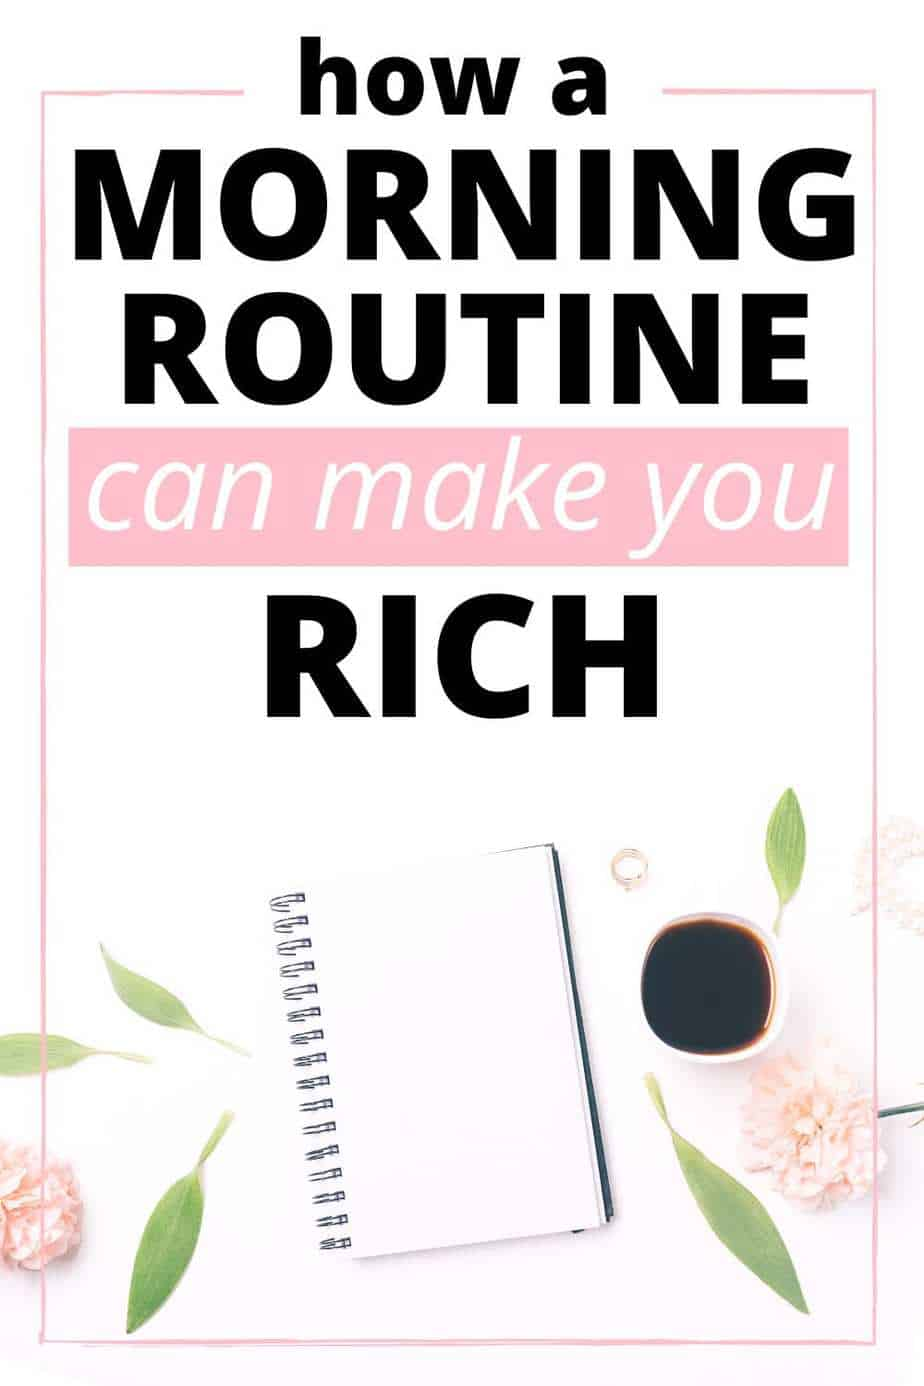 how a morning routine can make you rich